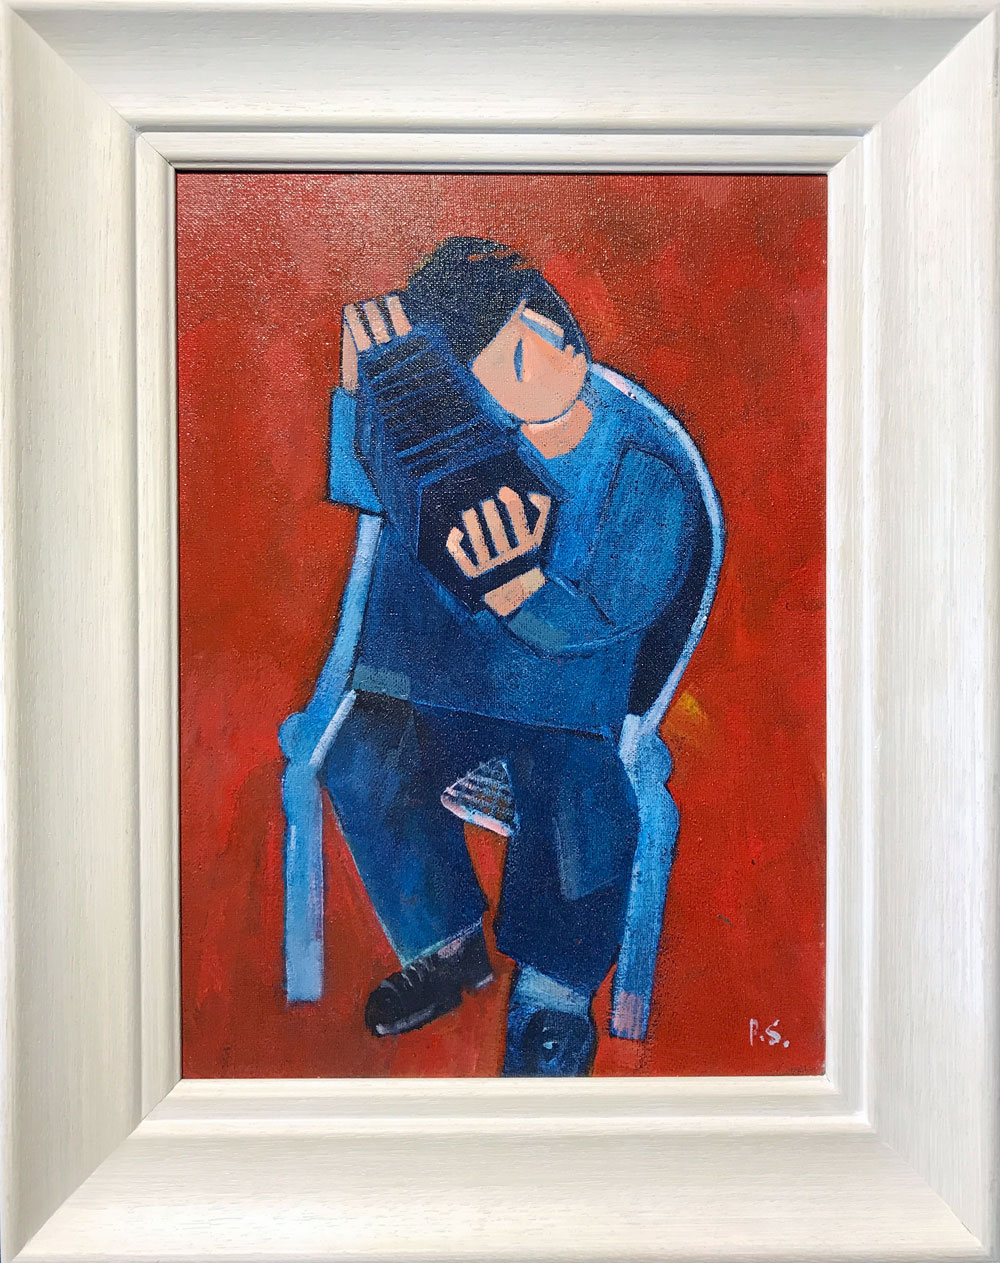 Peter stanaway he played real good for free original for Real art for sale